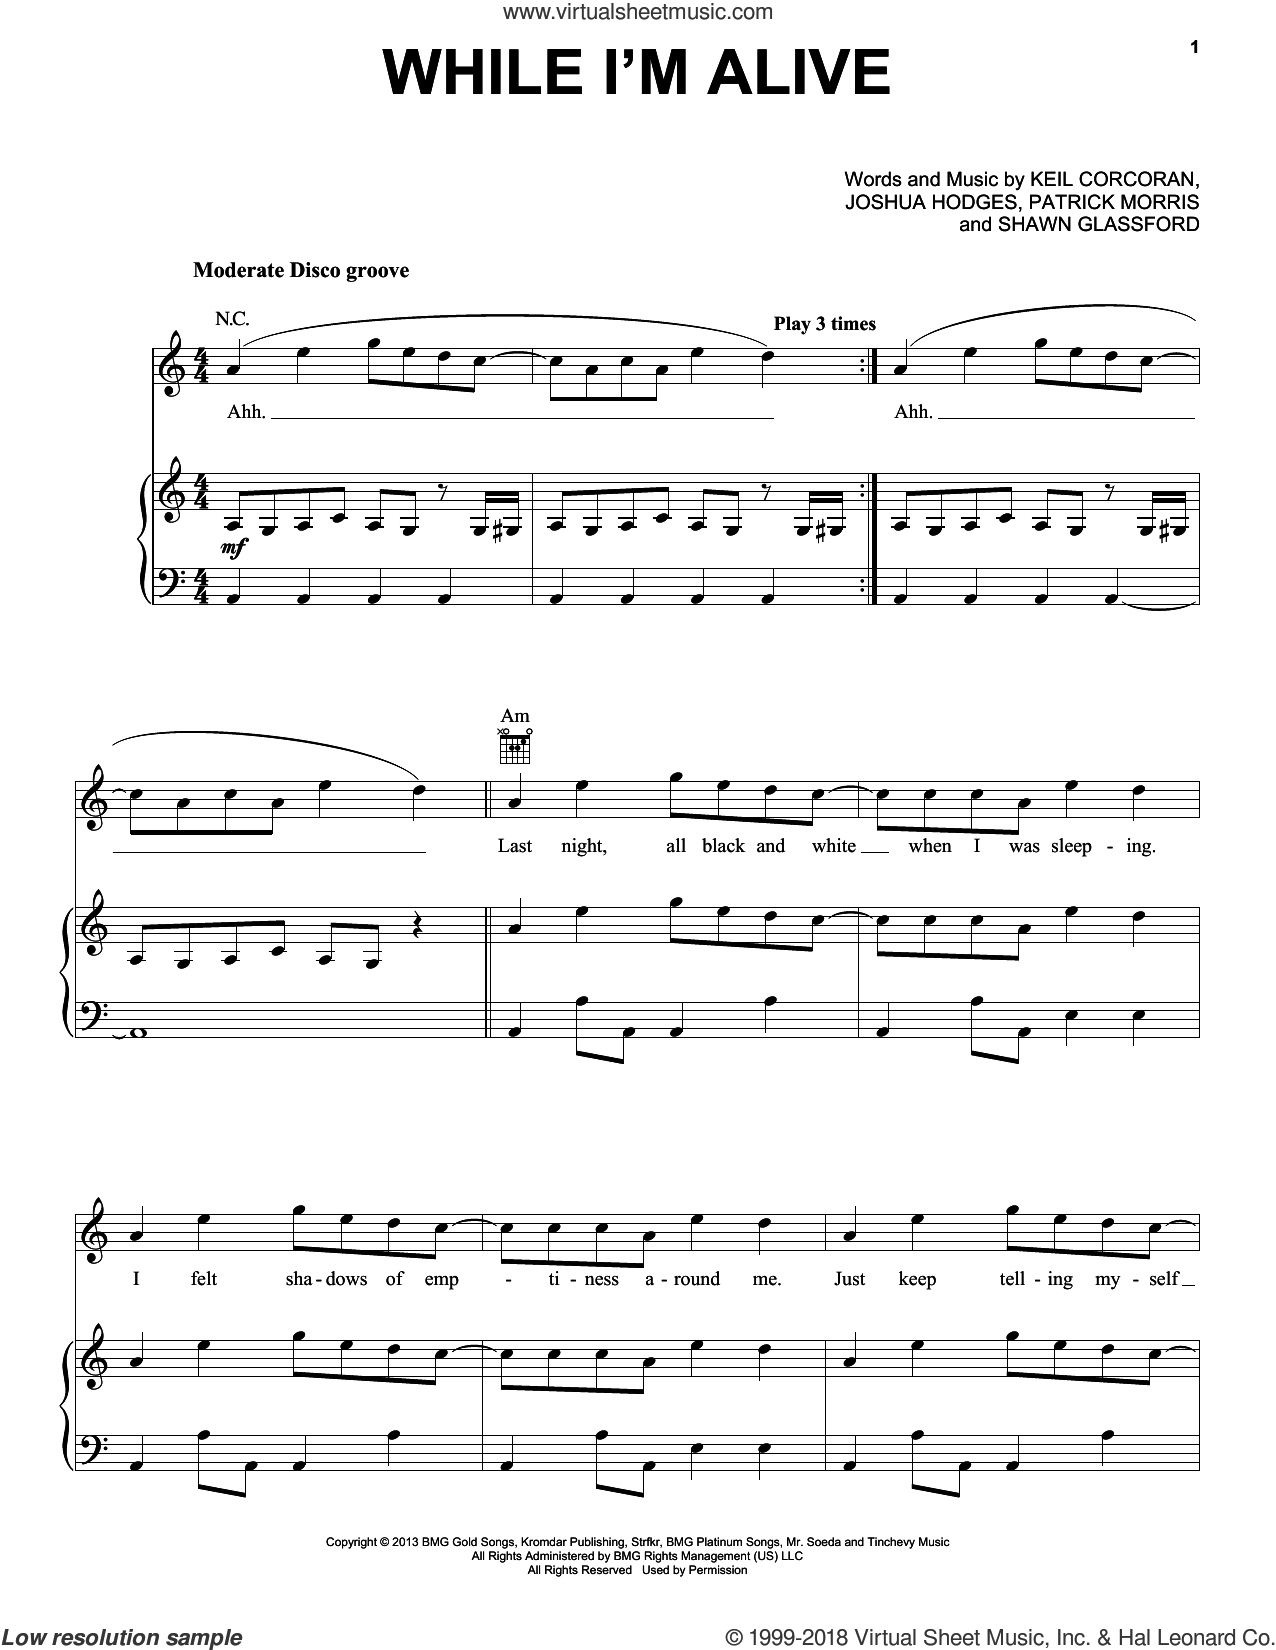 While I'm Alive sheet music for voice, piano or guitar by Strfkr, Joshua Hodges, Keil Corcoran, Patrick Morris and Shawn Glassford, intermediate. Score Image Preview.